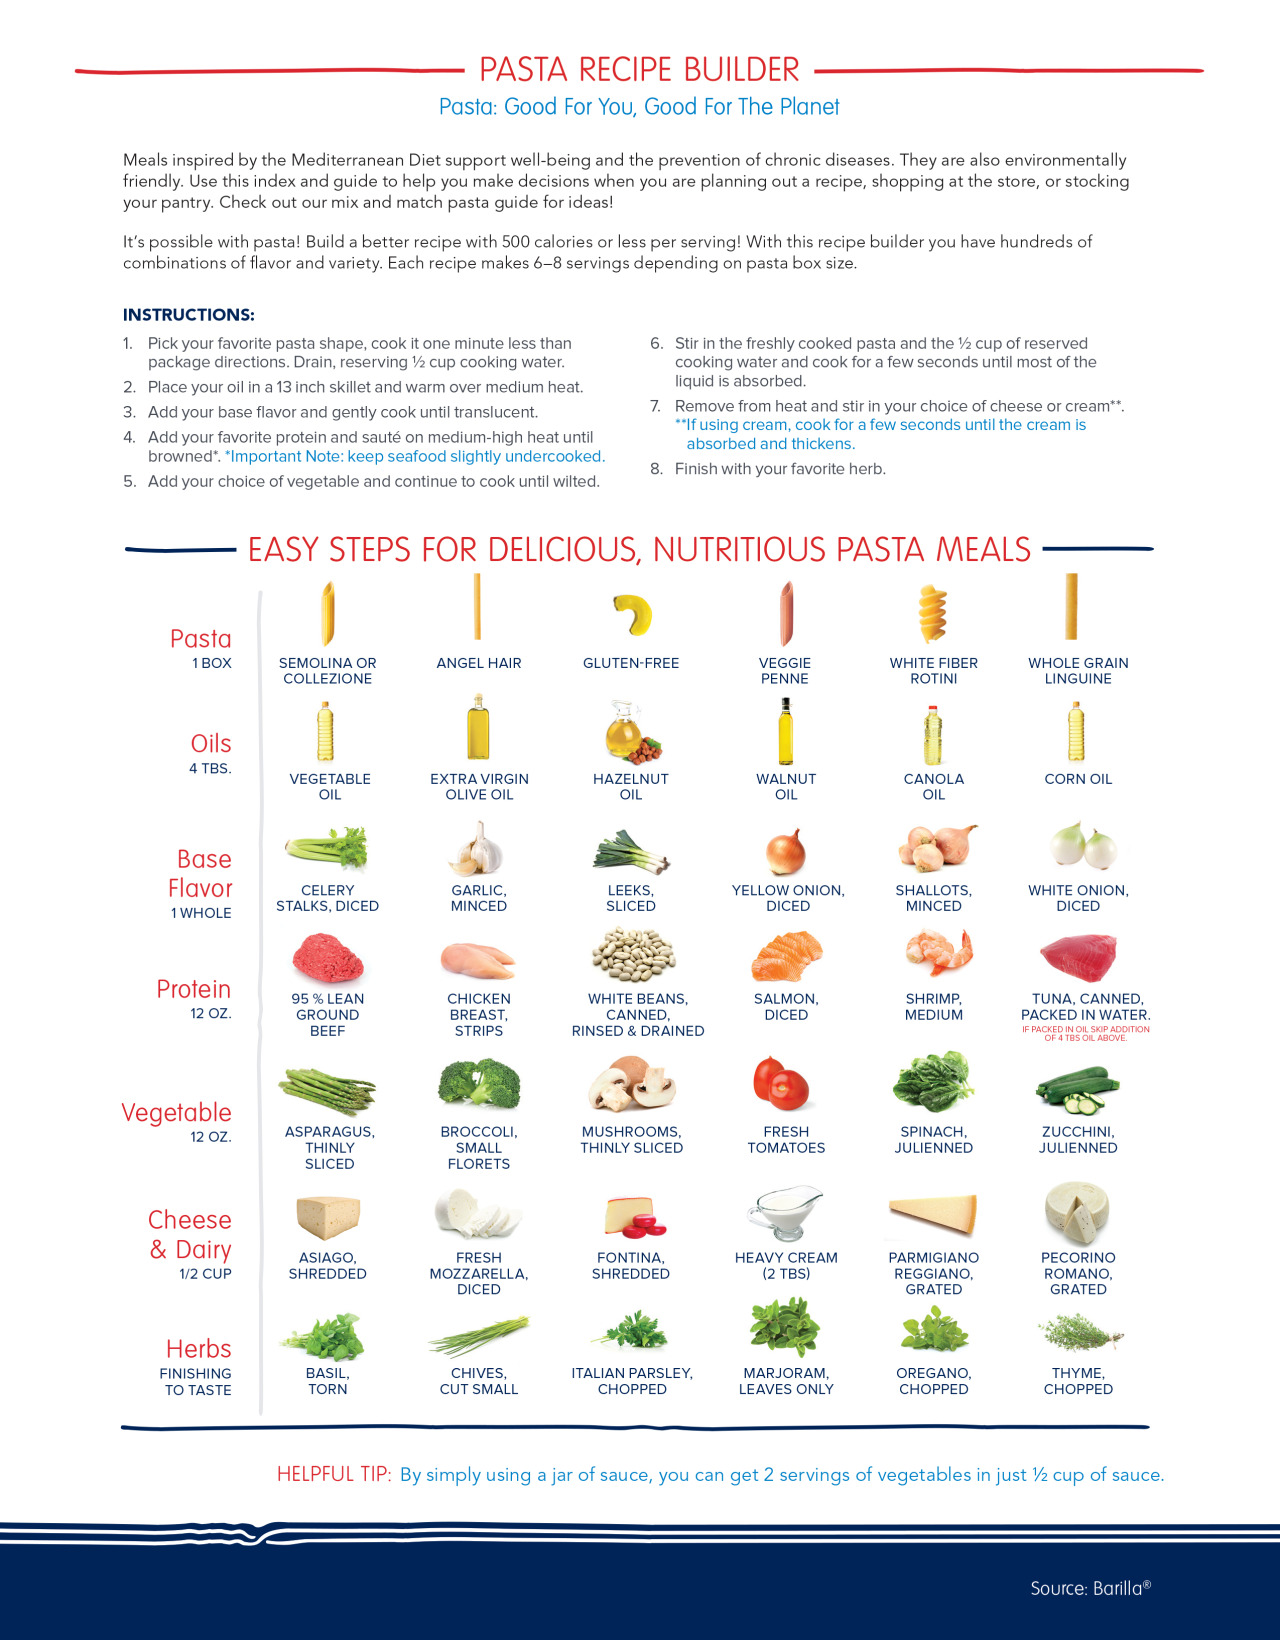 Barilla Pasta Recipe Builder: Healthy Pasta Dishes